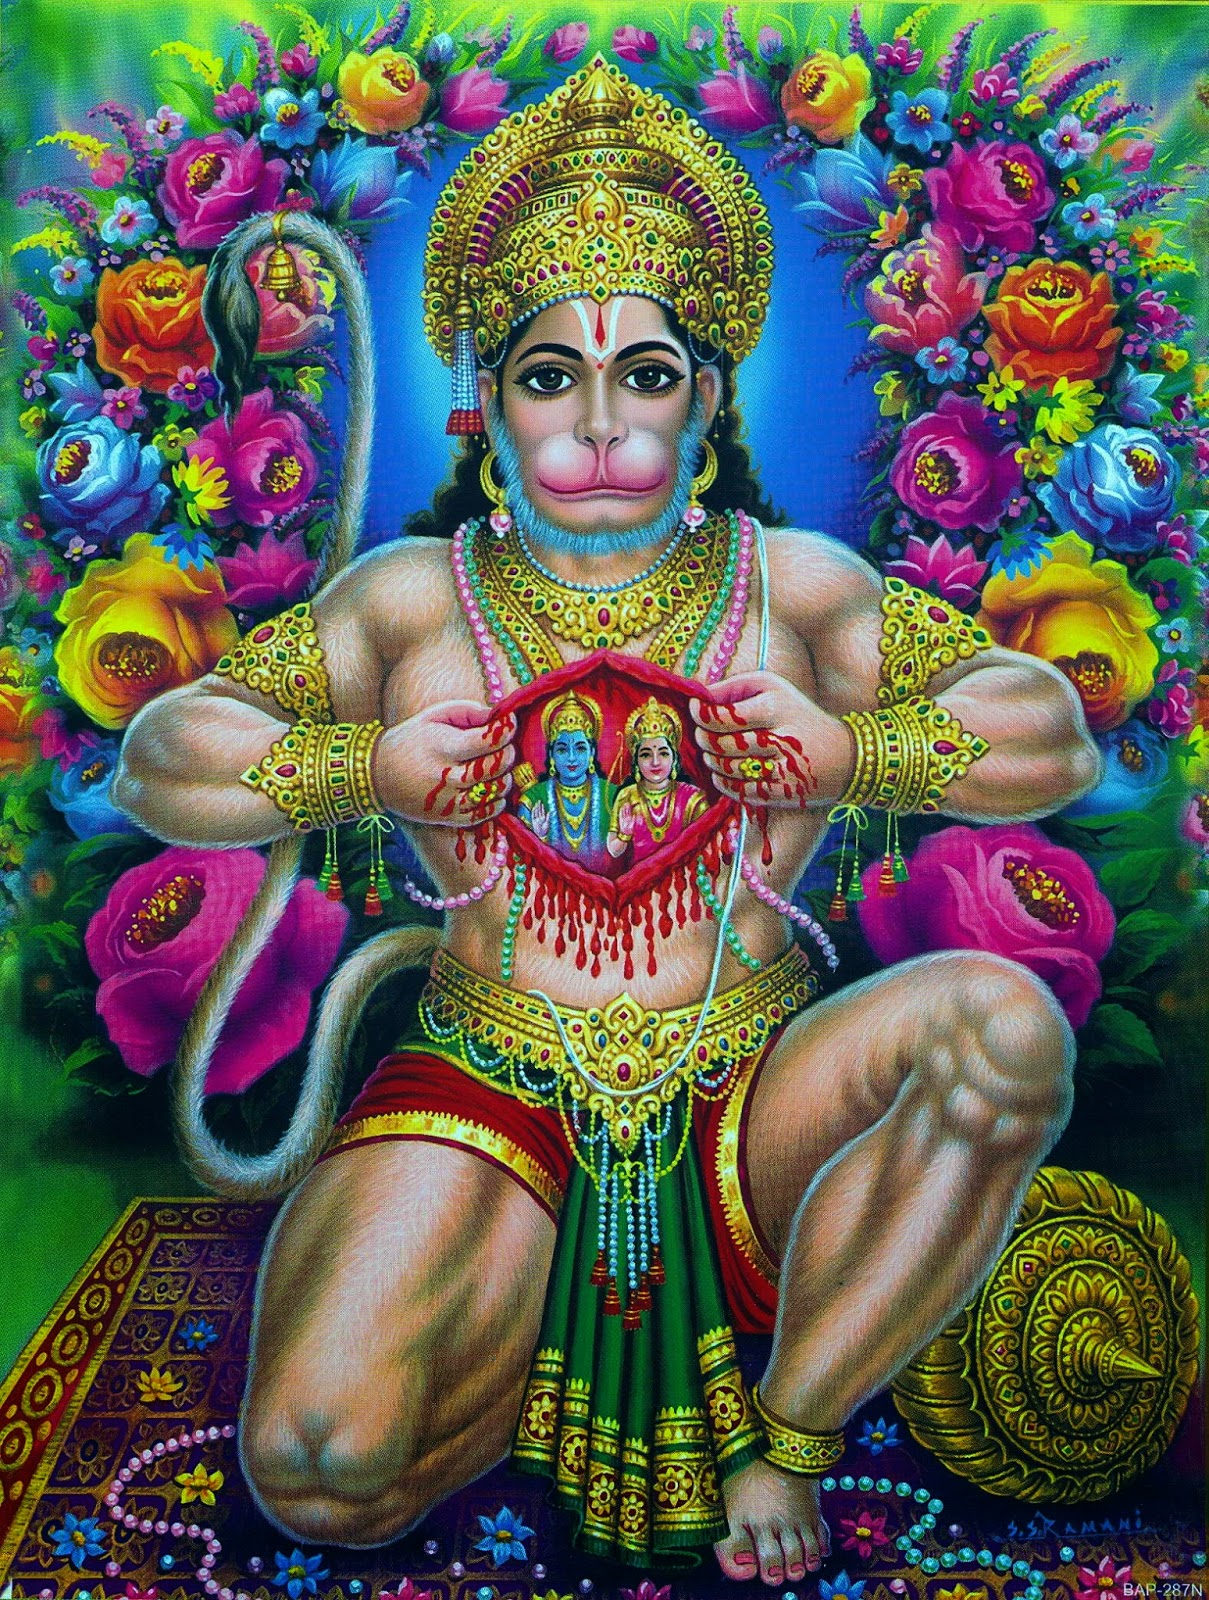 Hd wallpaper hanuman - Free Hd Wallpapers Of Download Free Hd Wallpapers Download Hd Wallpapers Of Events Download Hanuman Ji Hd Images Of Hanumanji